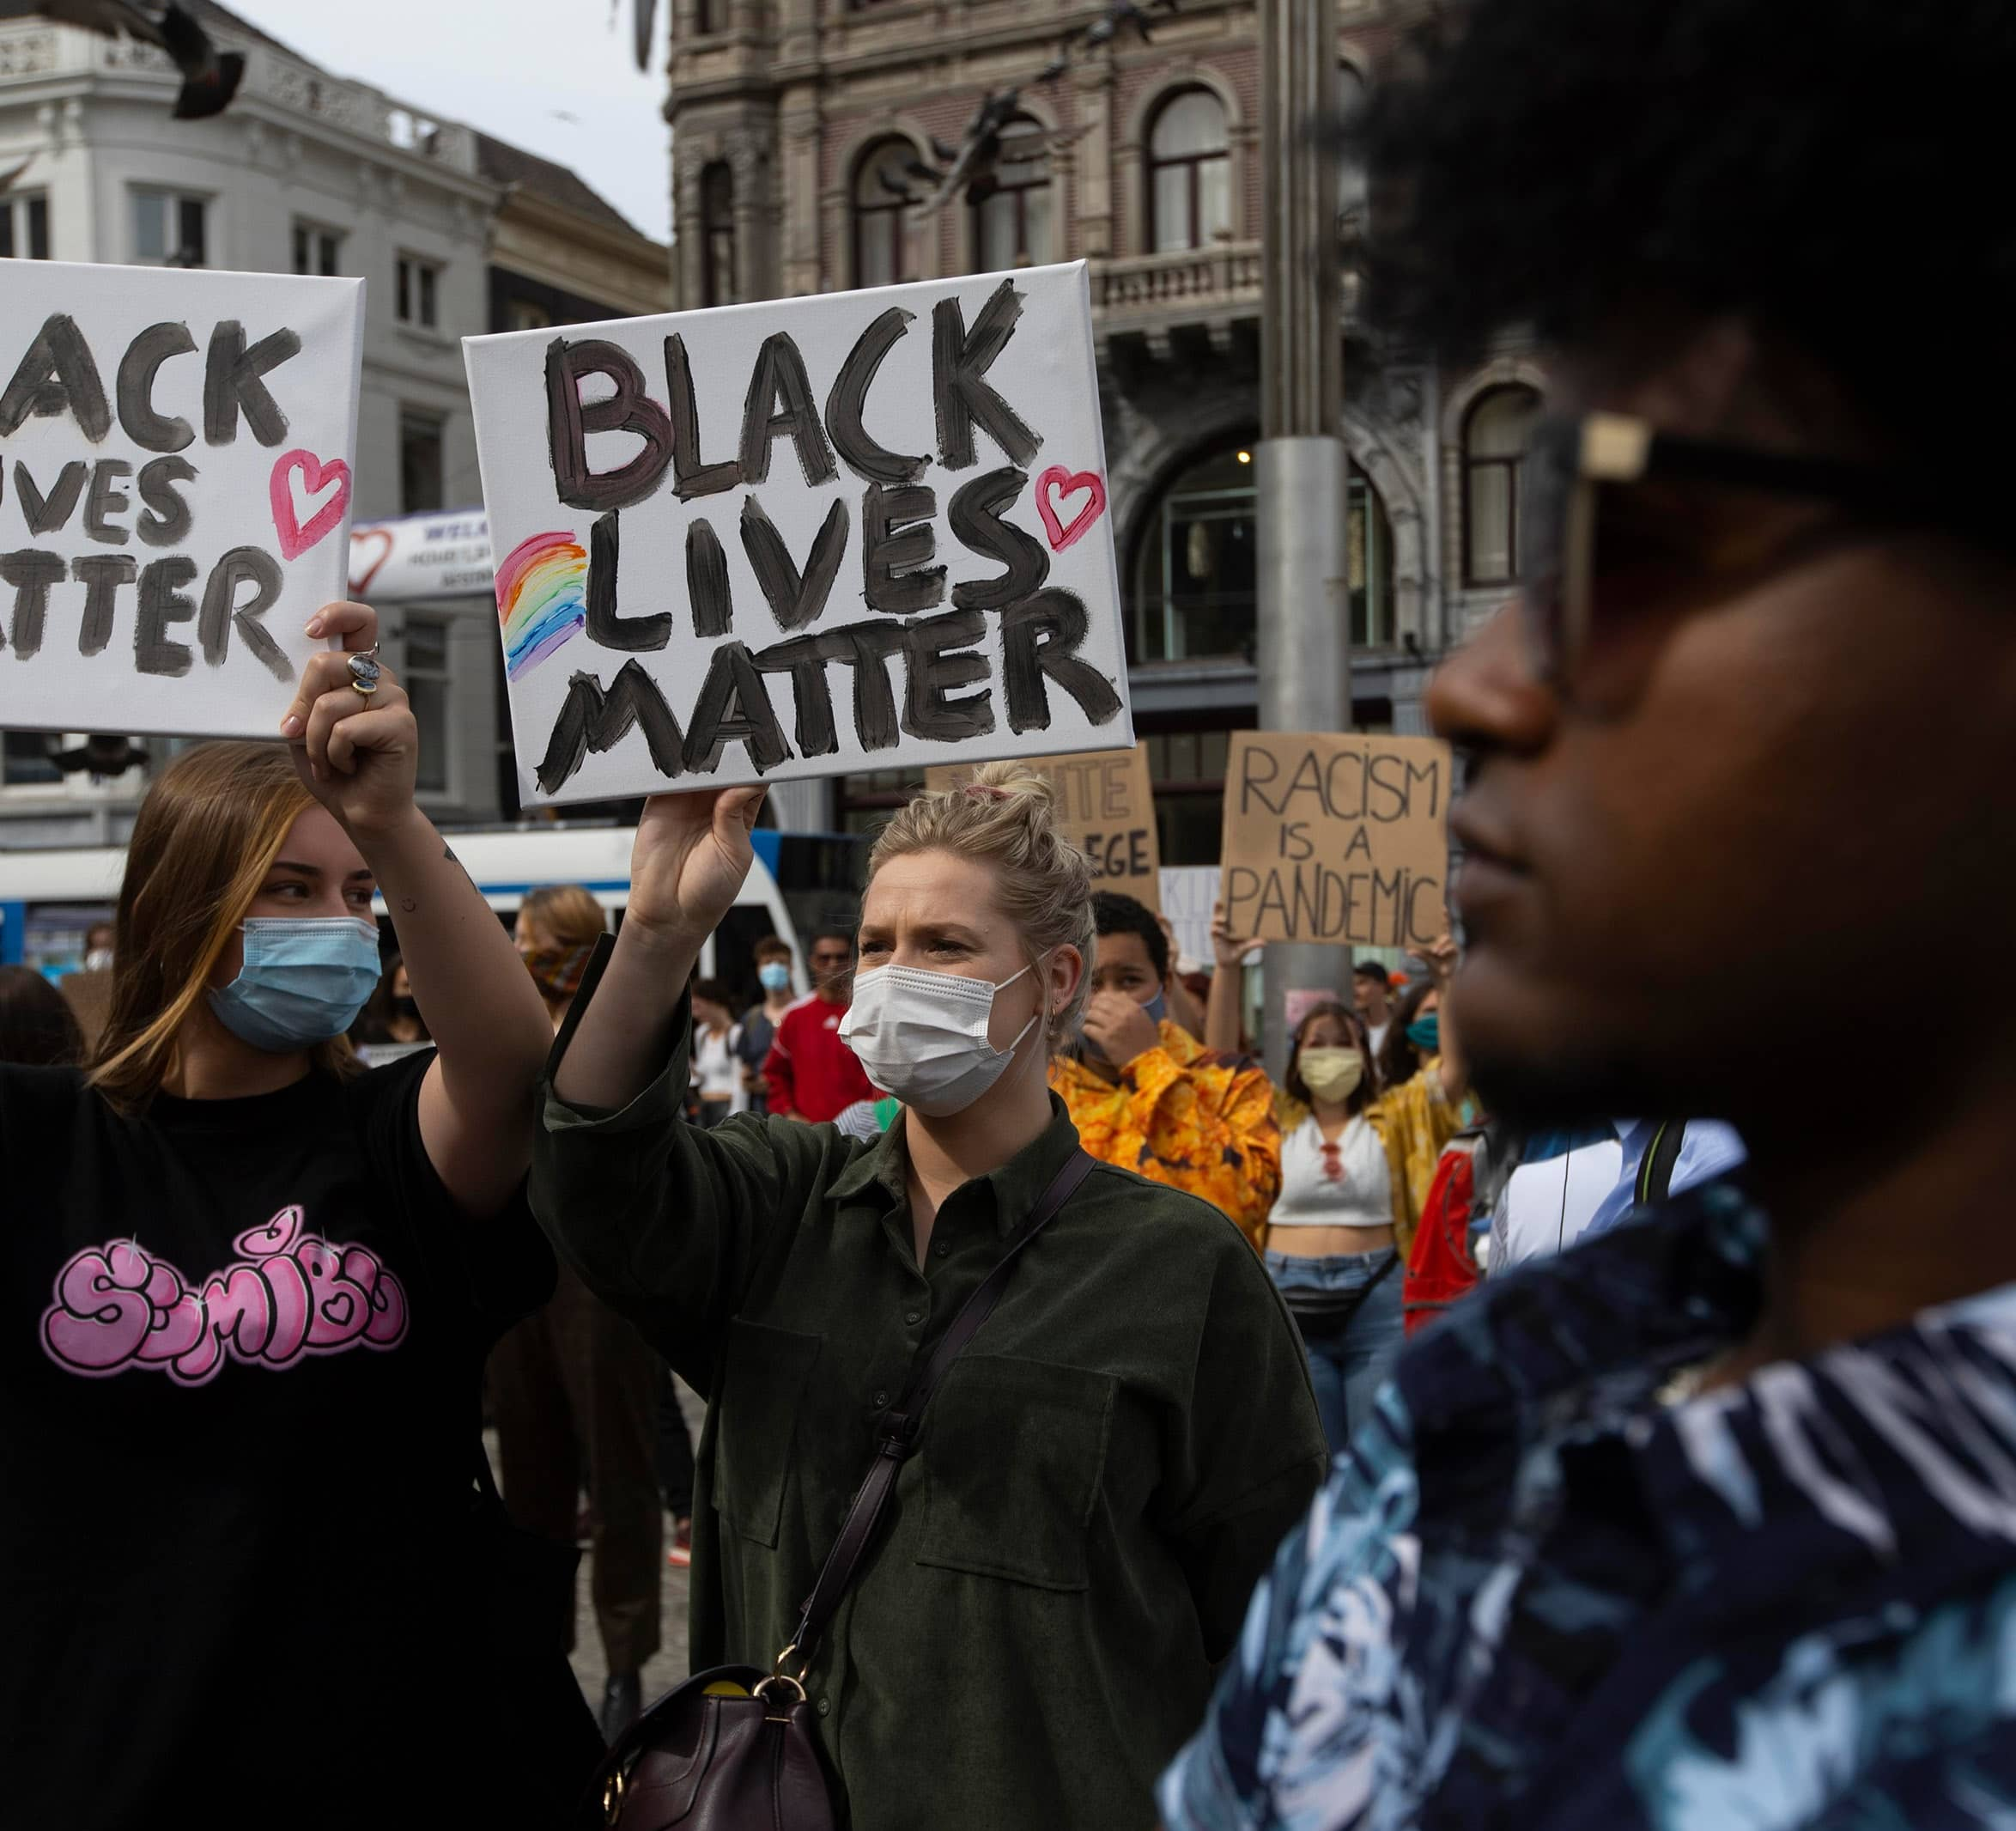 Brands Weigh In On National Protests Over Police Brutality